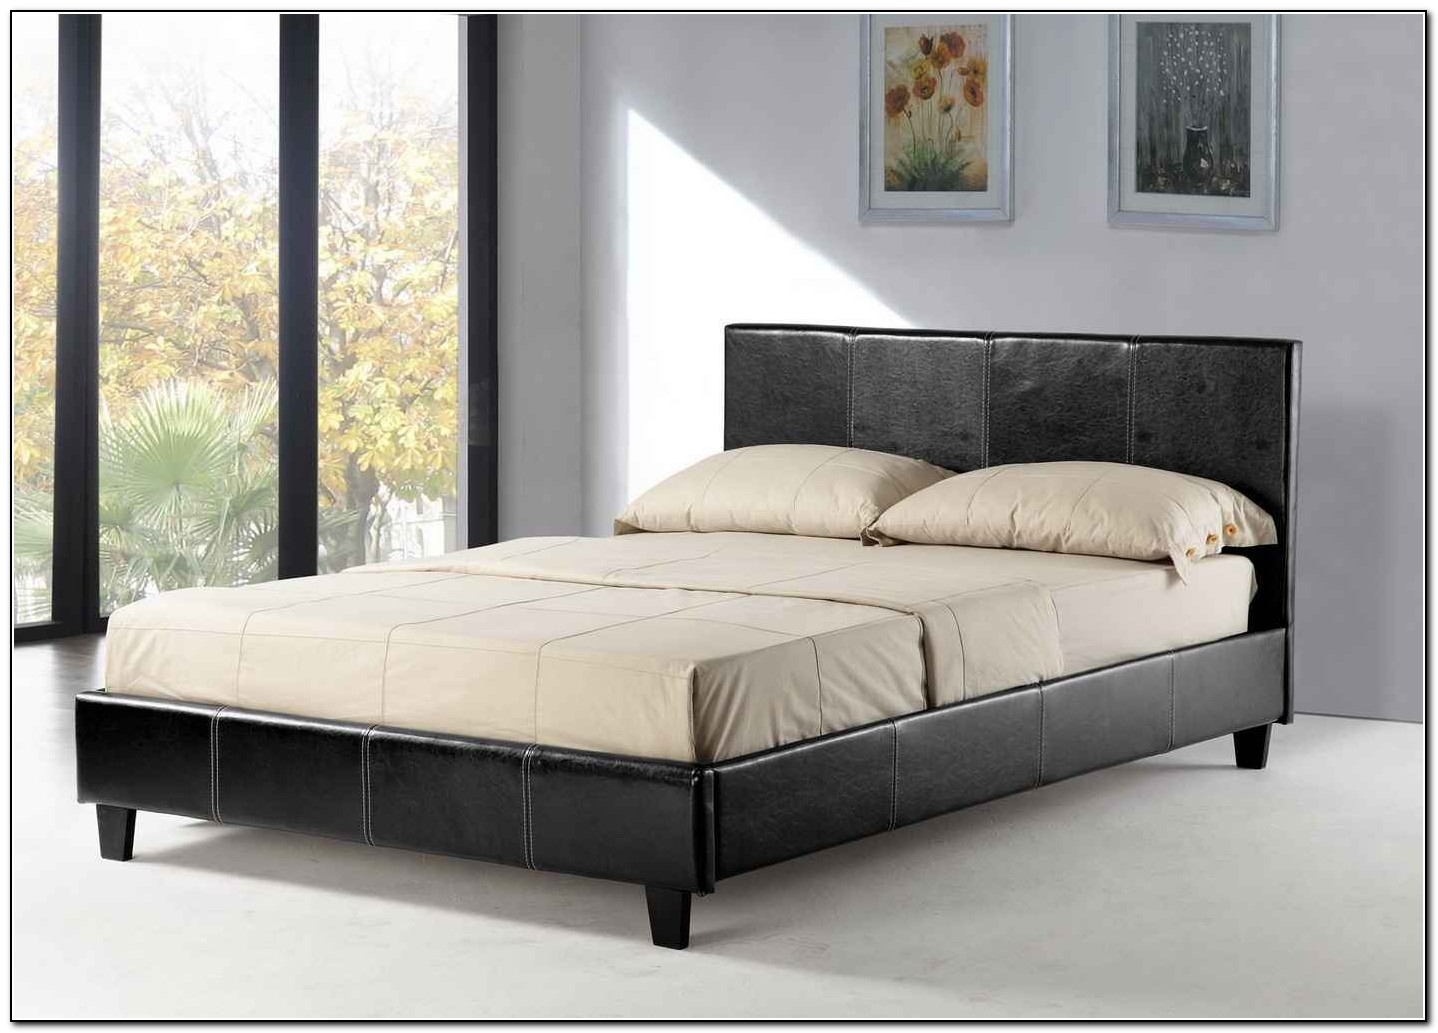 Cheap Queen Bed Frames Cheap Queen Bed Frames With Mattress Beds Home Design